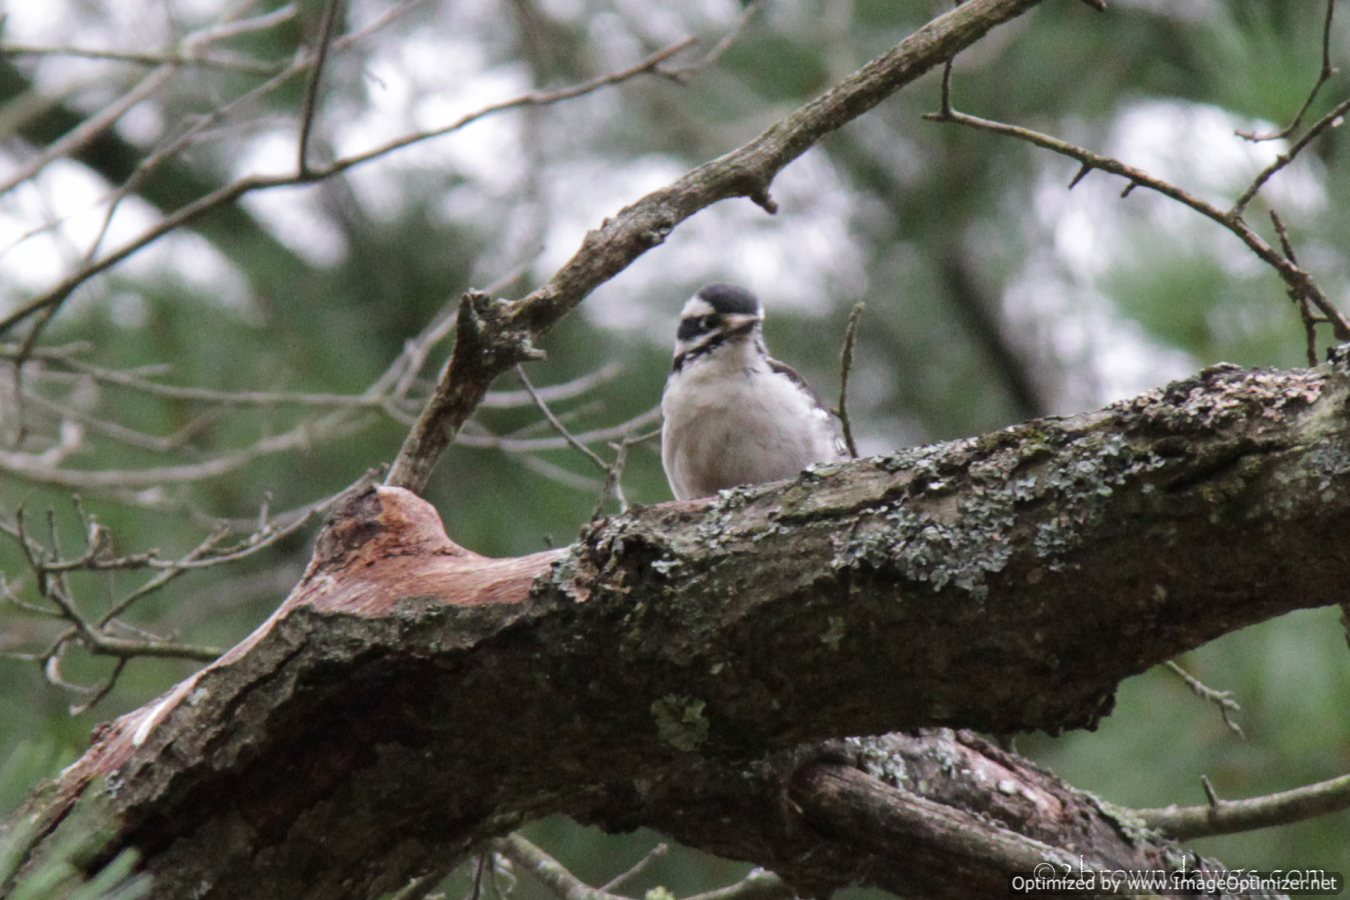 I Like This Picture Of A Downy Woodpecker Perched On A Tree